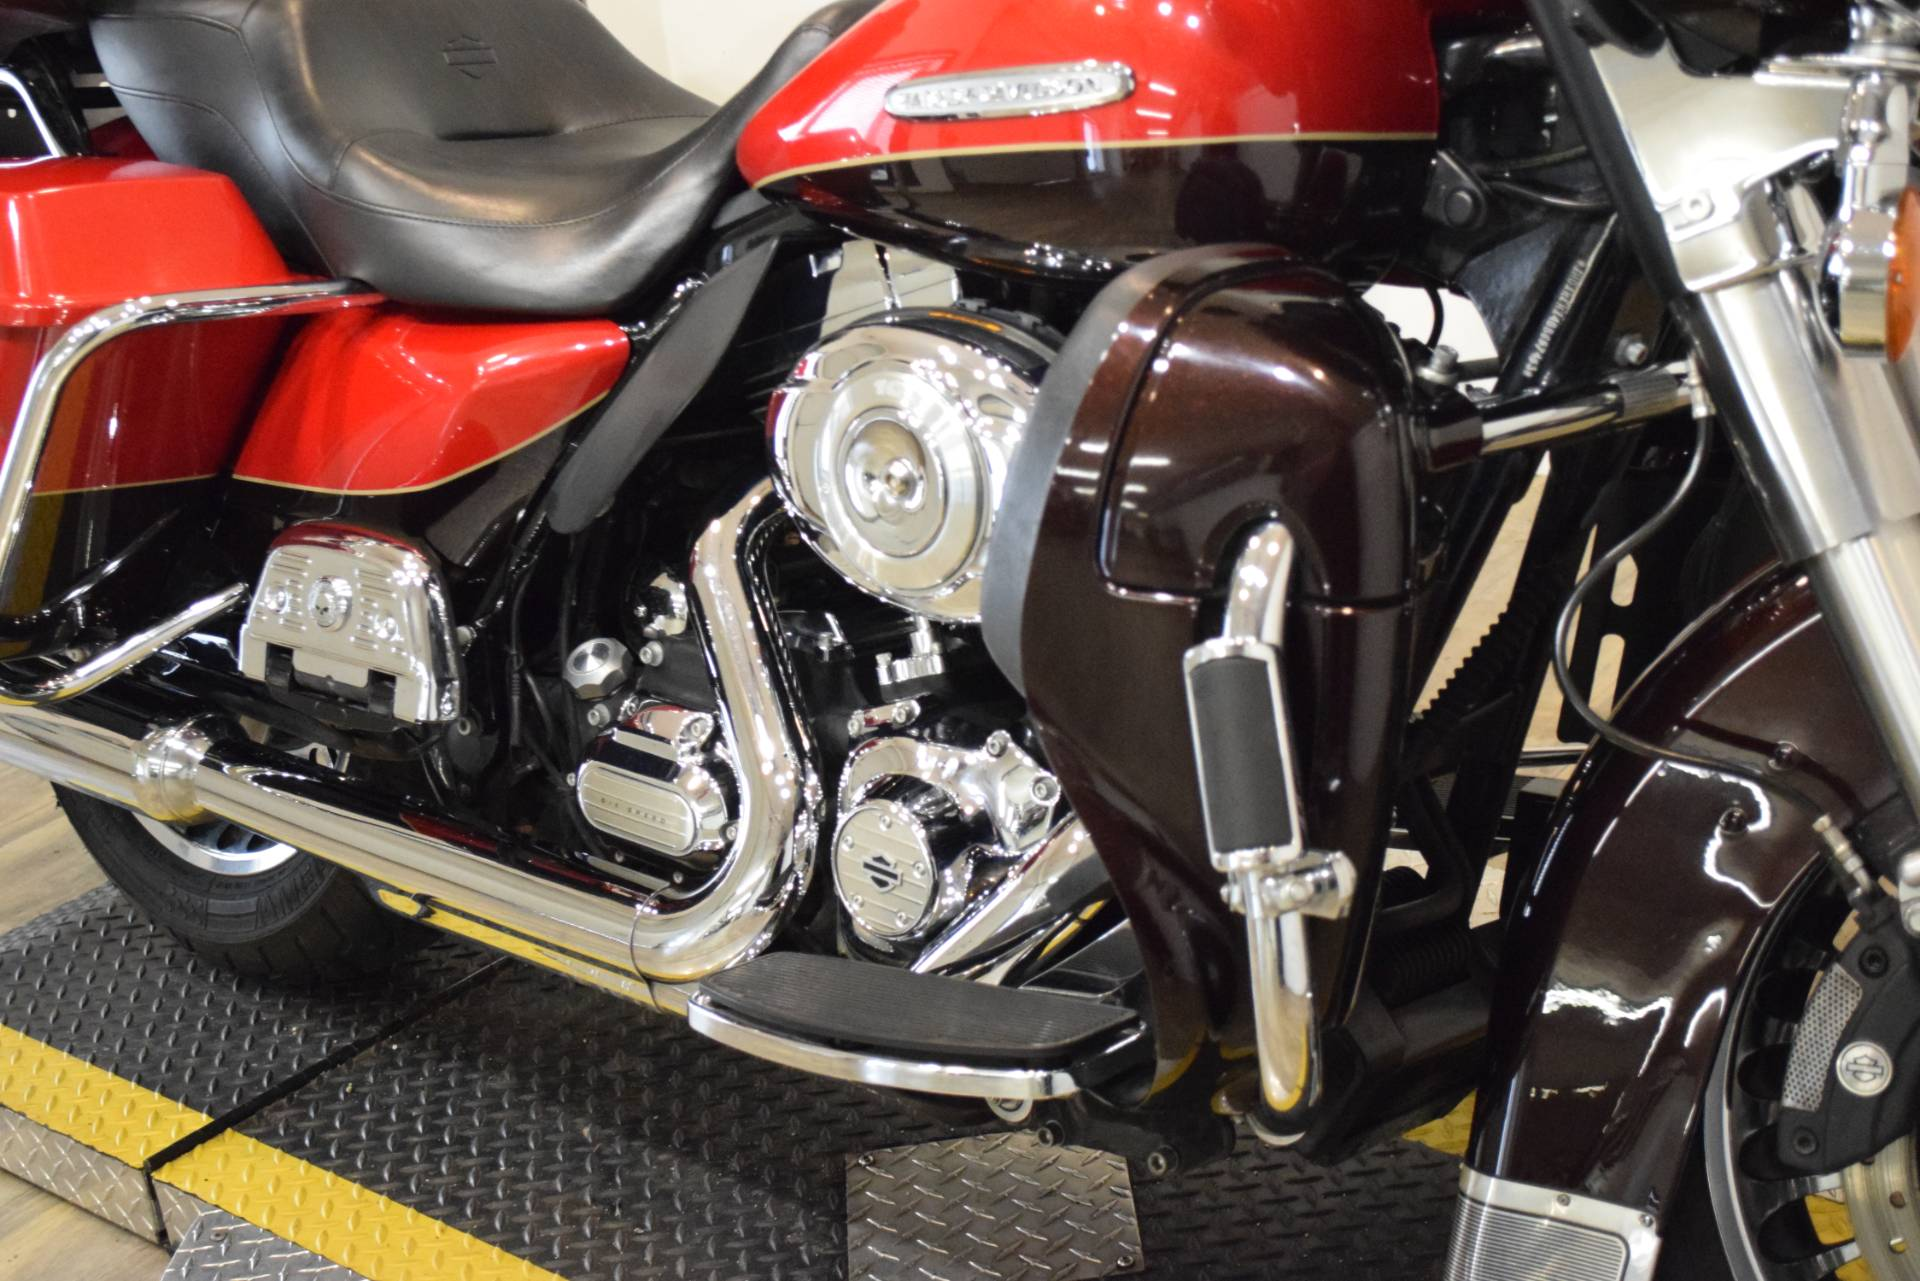 2011 Harley-Davidson Electra Glide® Ultra Limited in Wauconda, Illinois - Photo 4